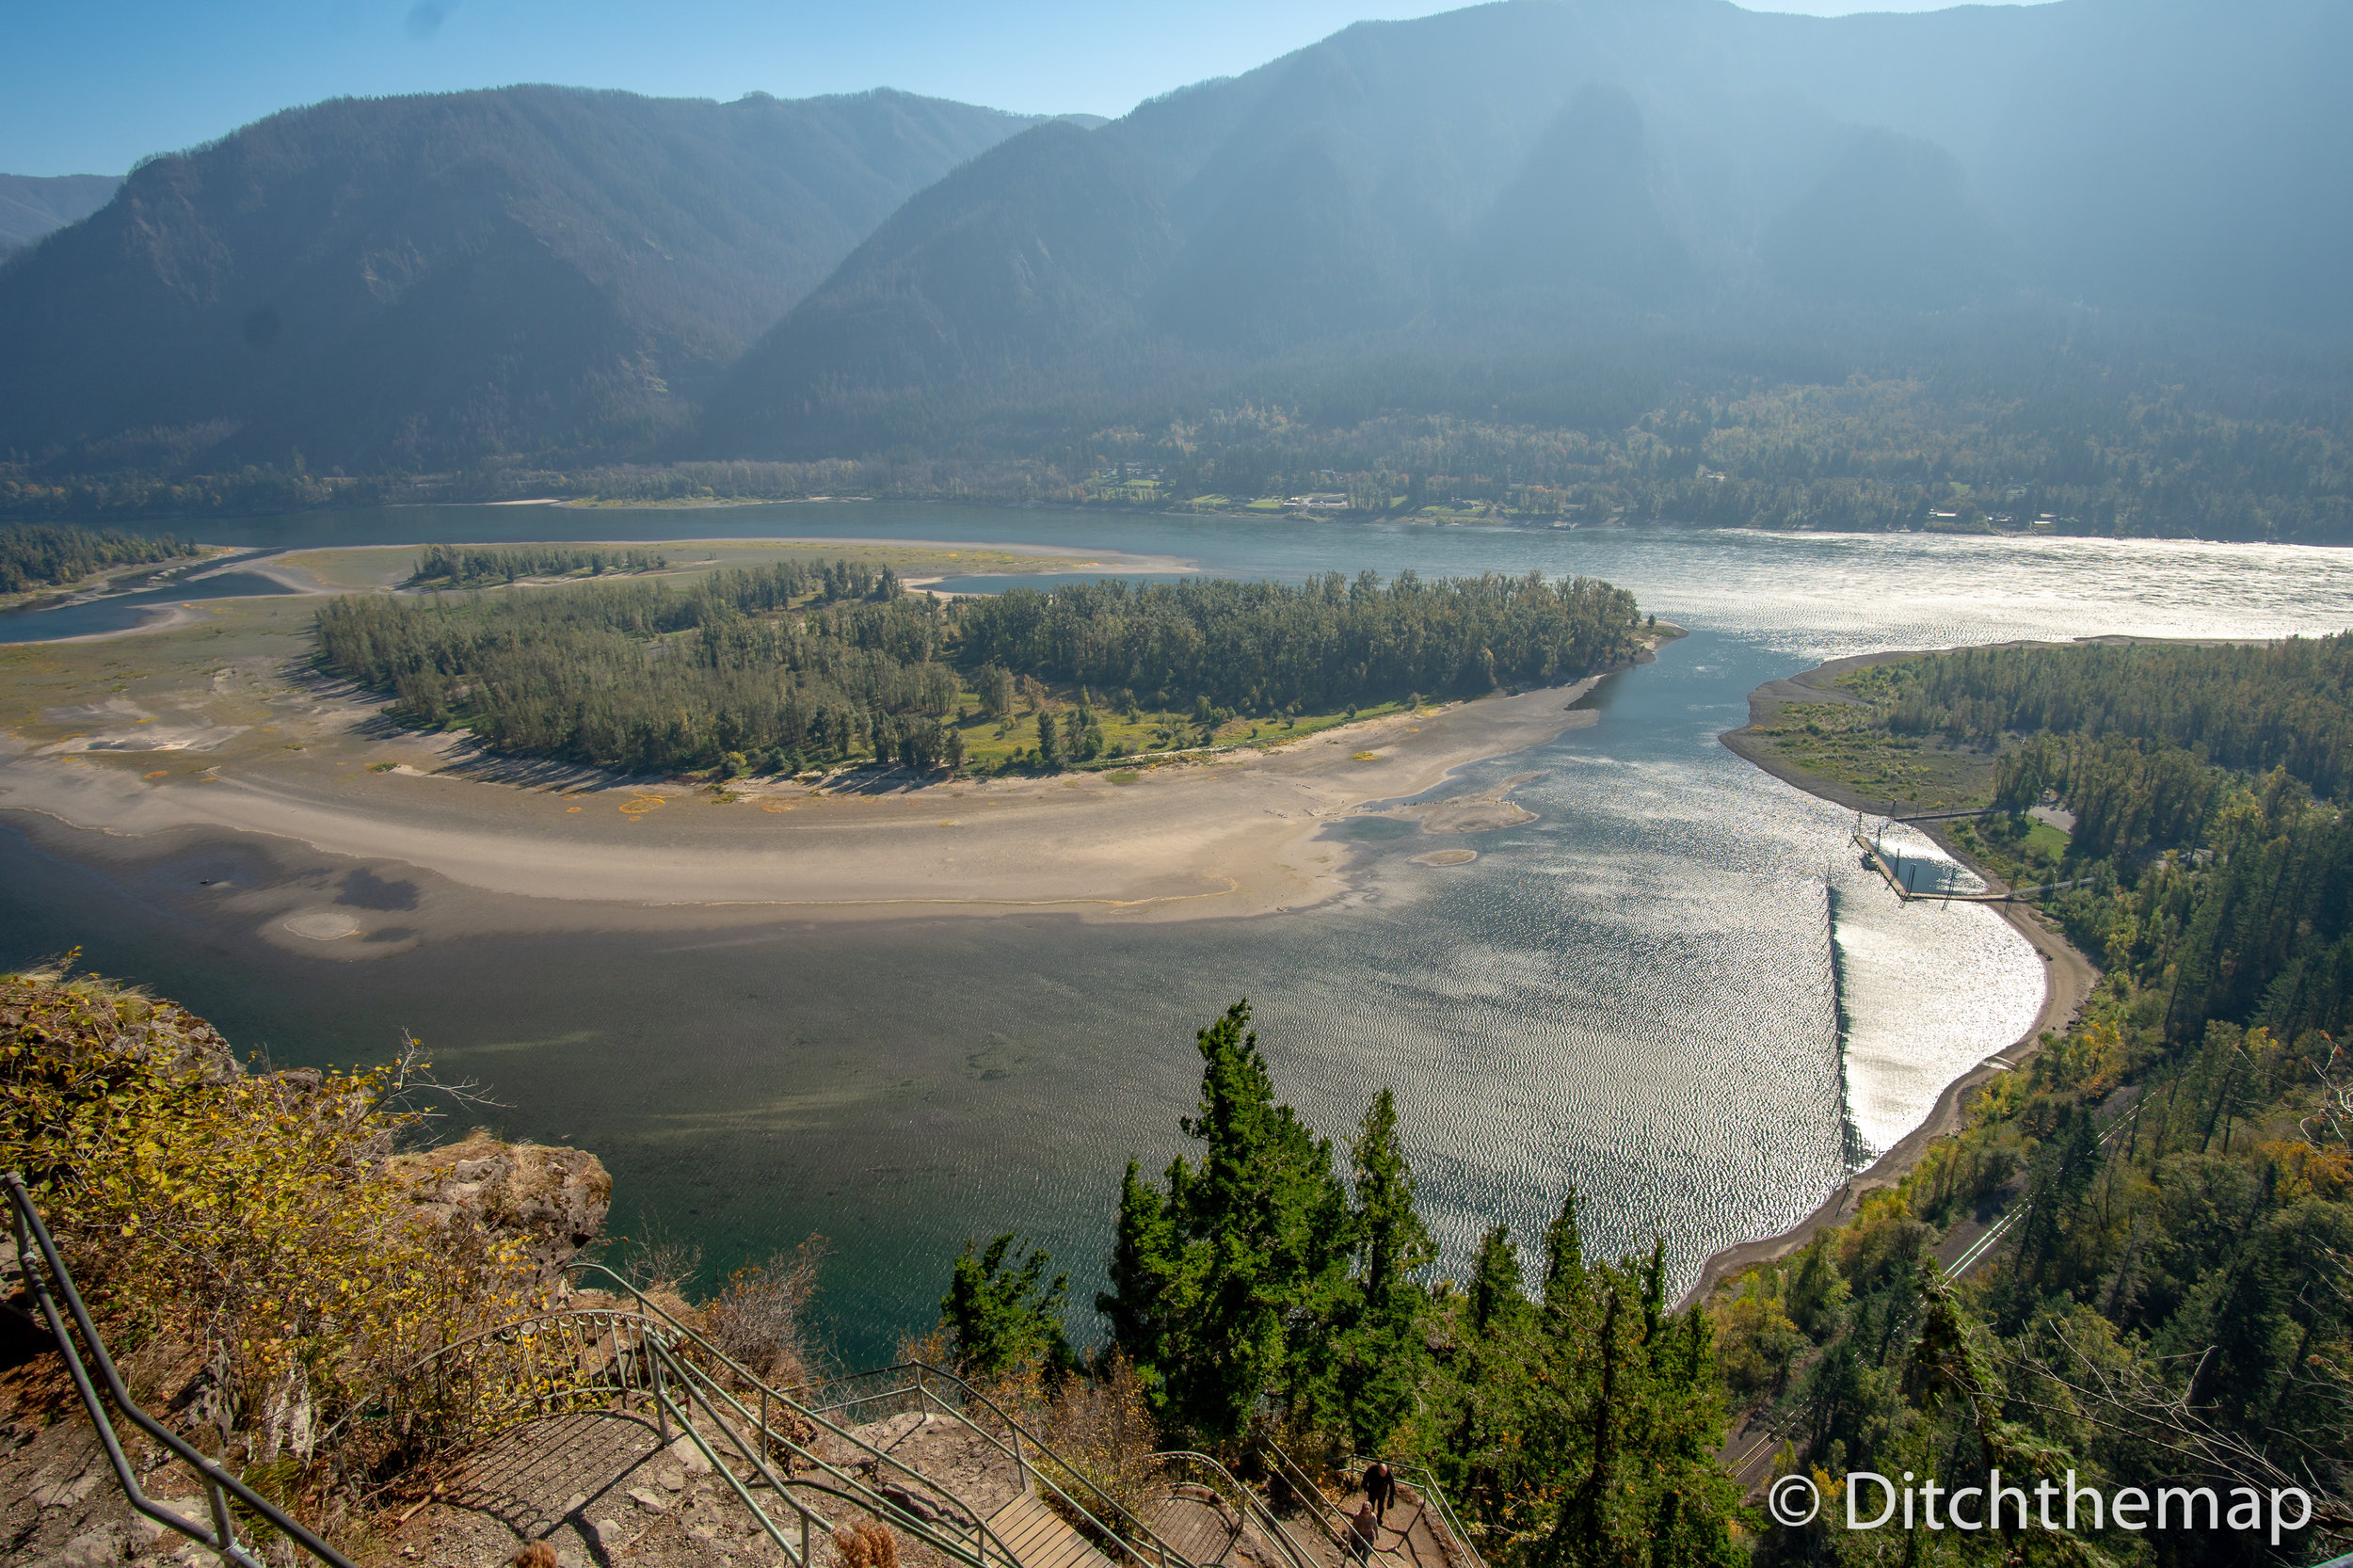 Panoramic landscape of Columbia River and Gorge